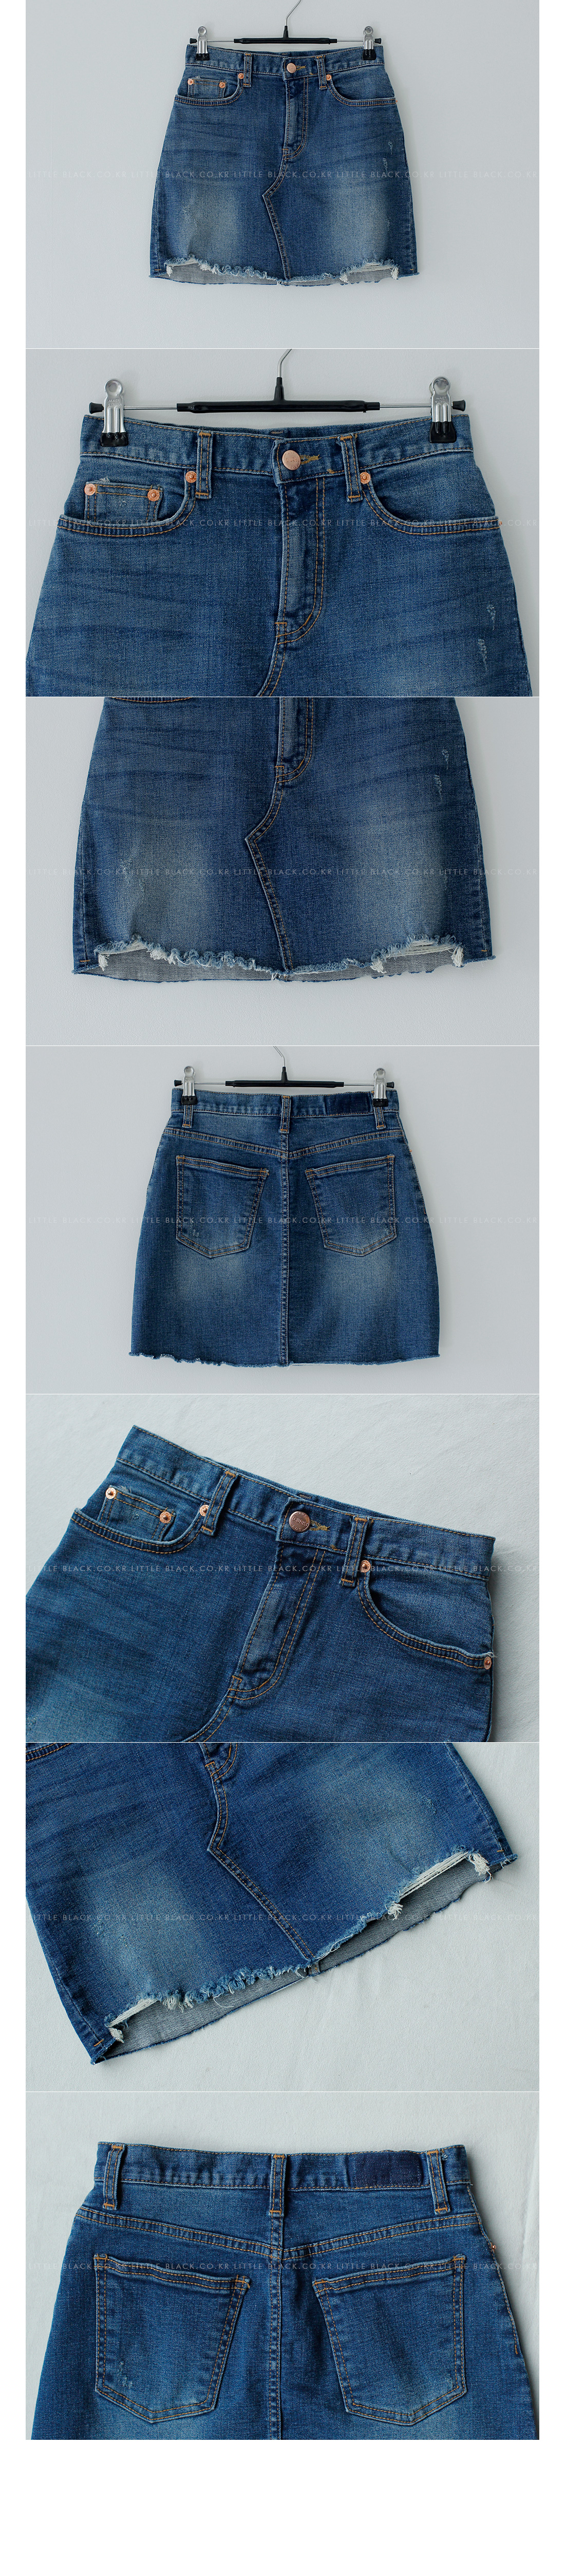 Distressed Hem Denim Skirt|